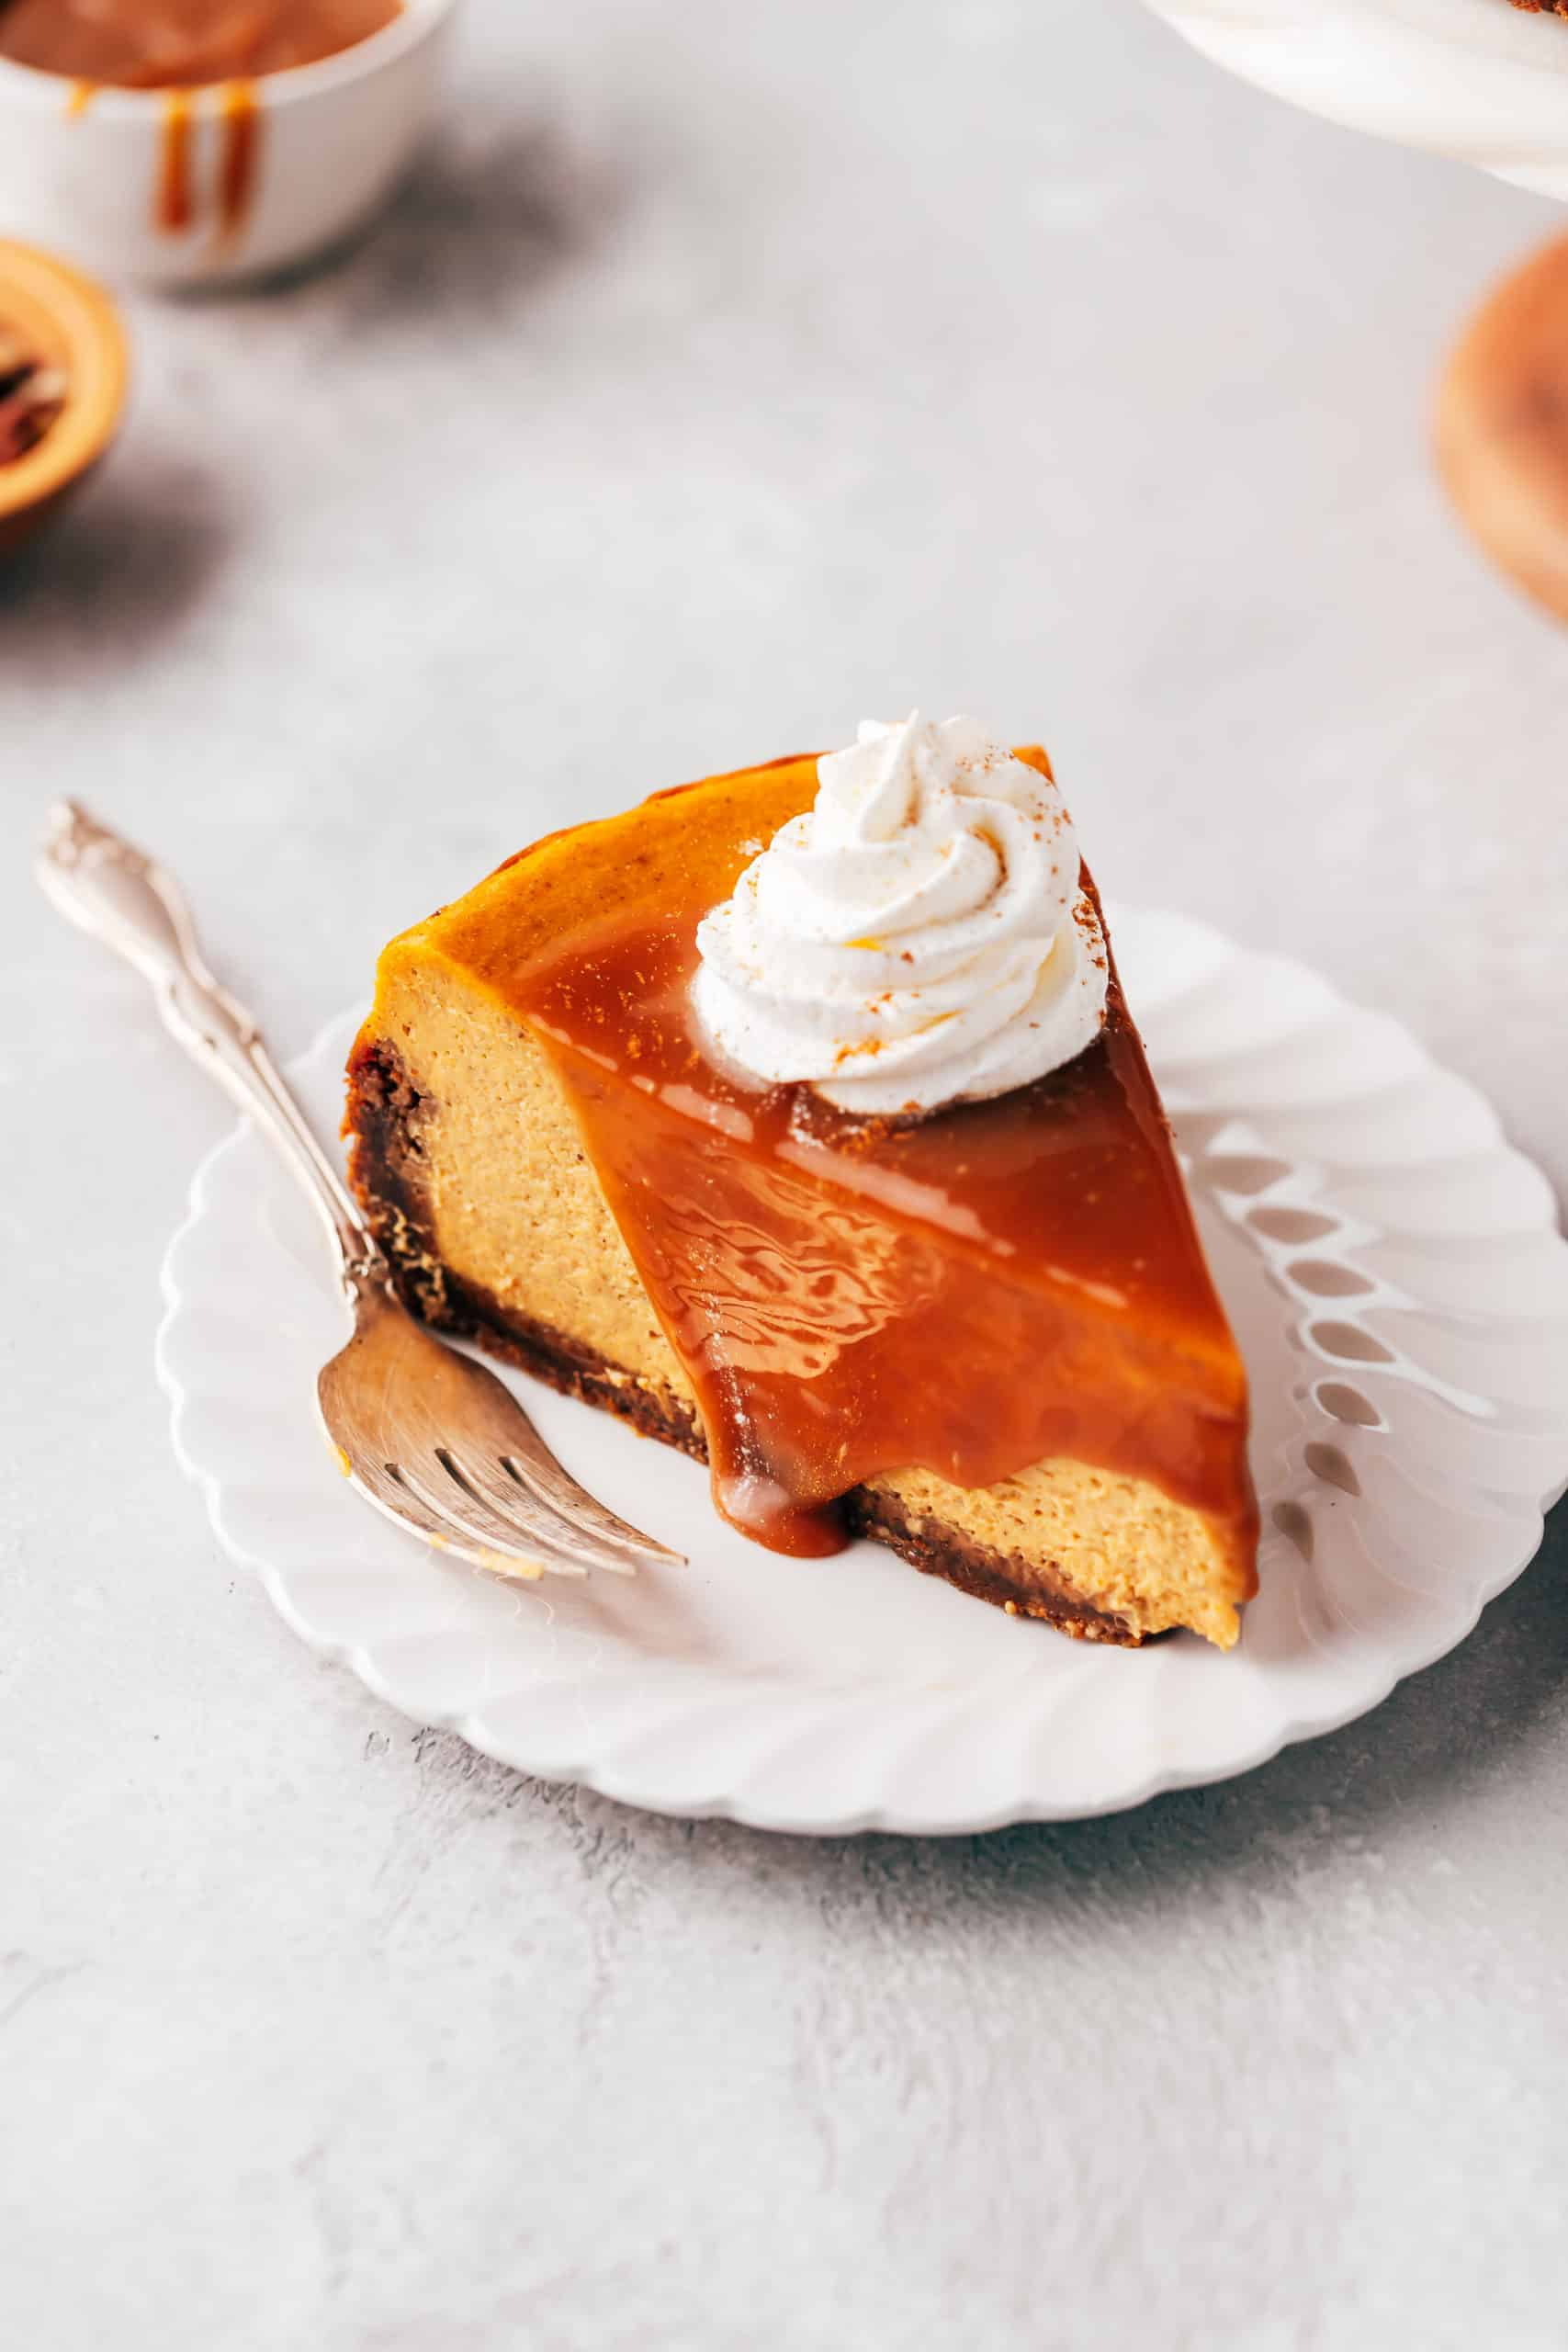 slice of pumpkin cheesecake with caramel sauce and whipped cream on a plate